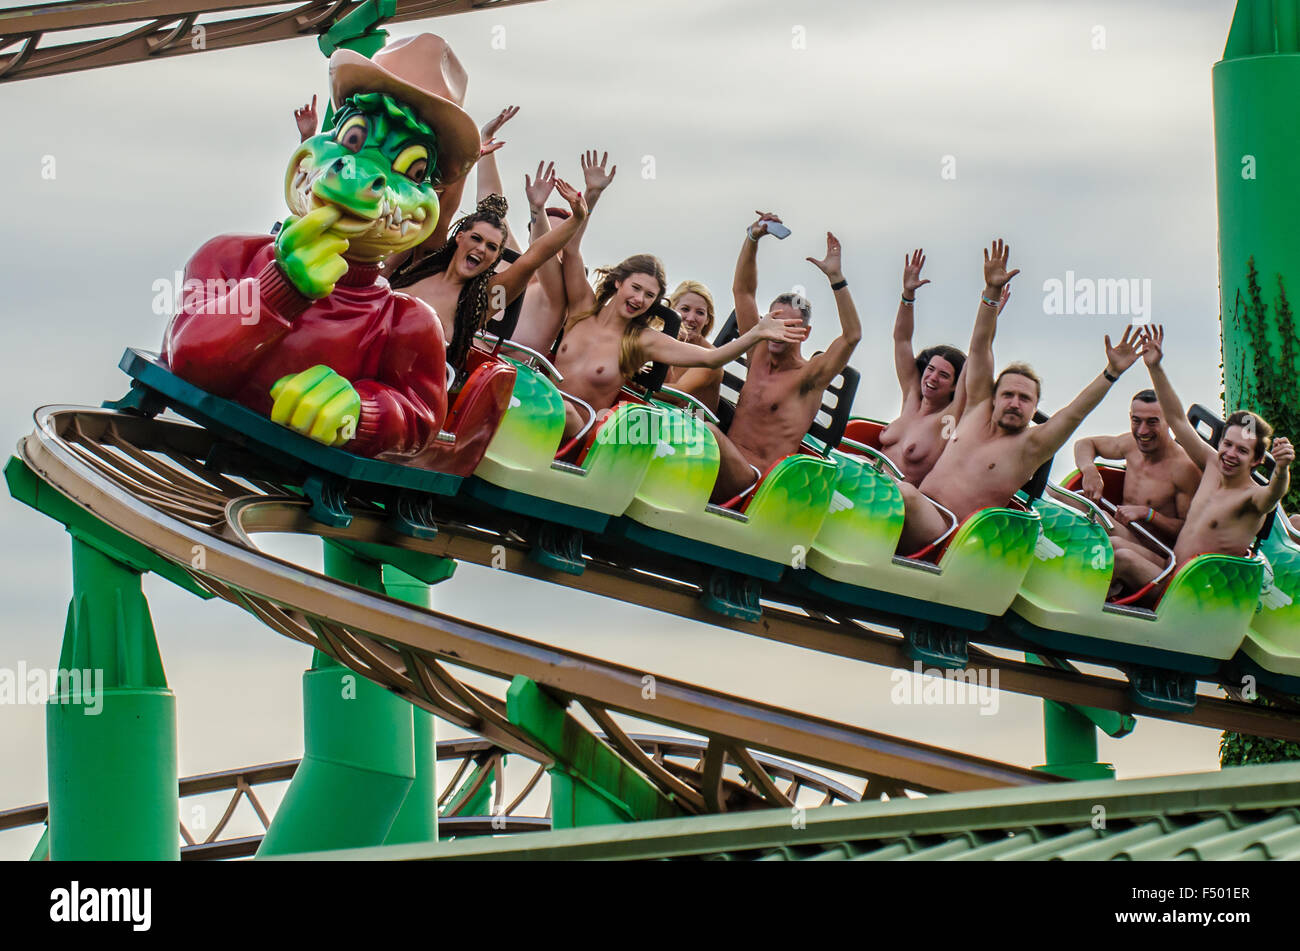 people-riding-a-rollercoaster-naked-in-southend-on-sea-essex-uk-green-F501ER.jpg